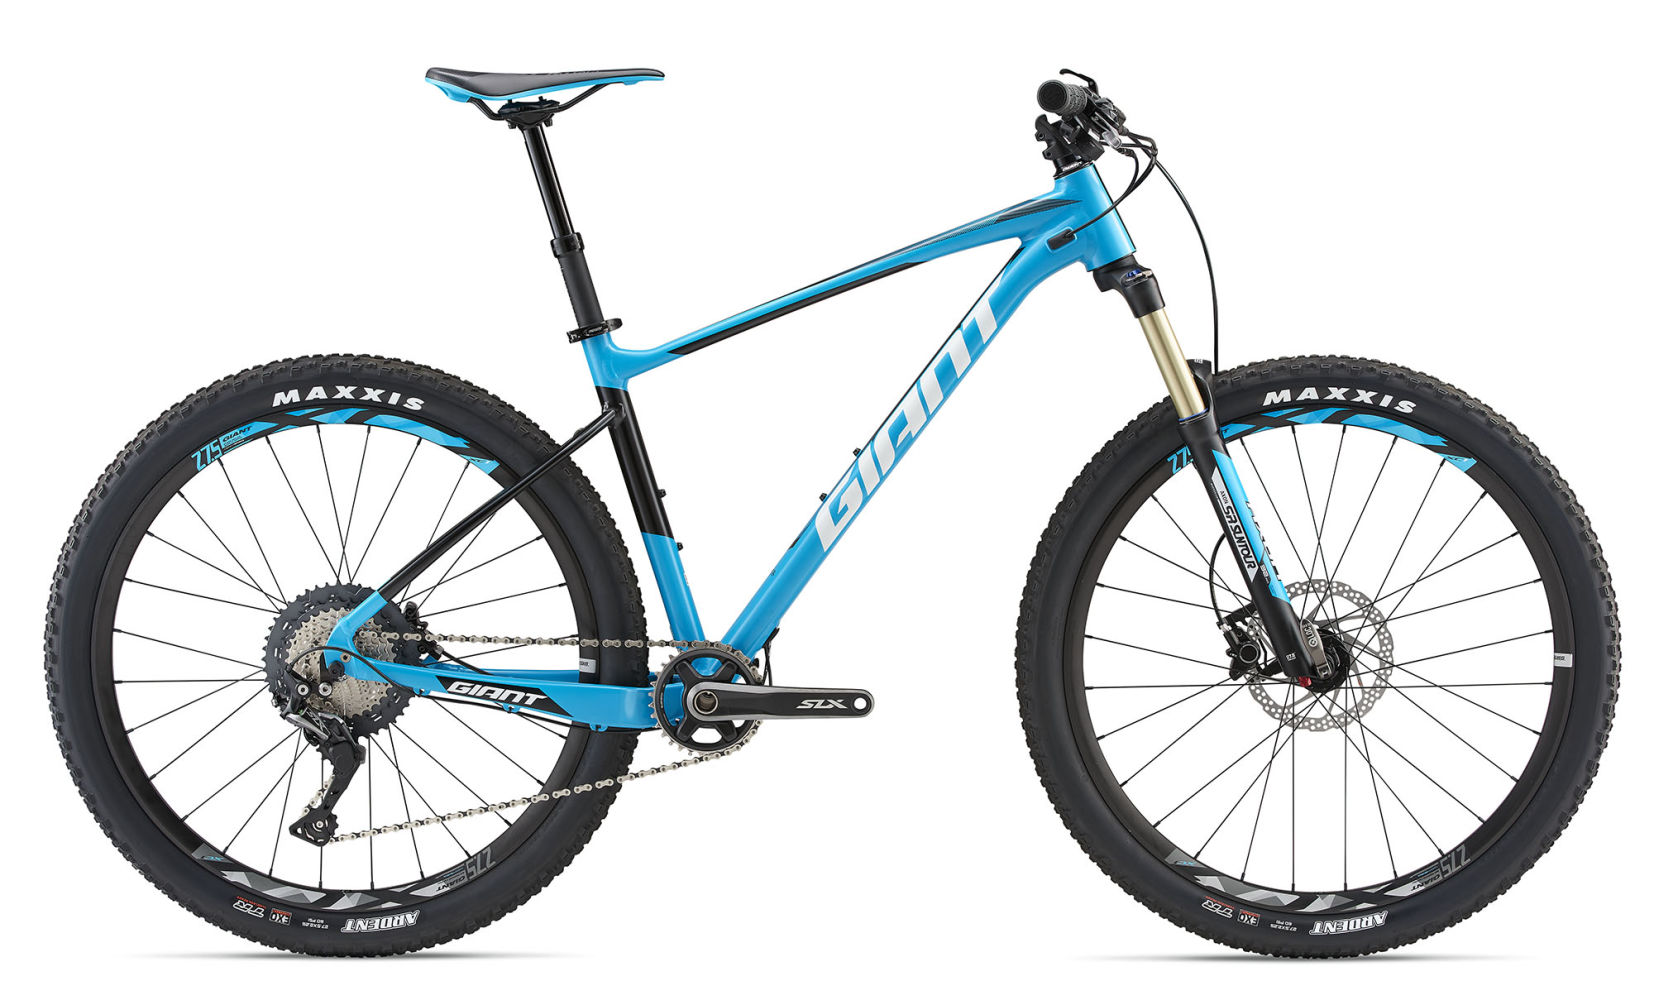 Fathom 2018 Giant Bicycles United States